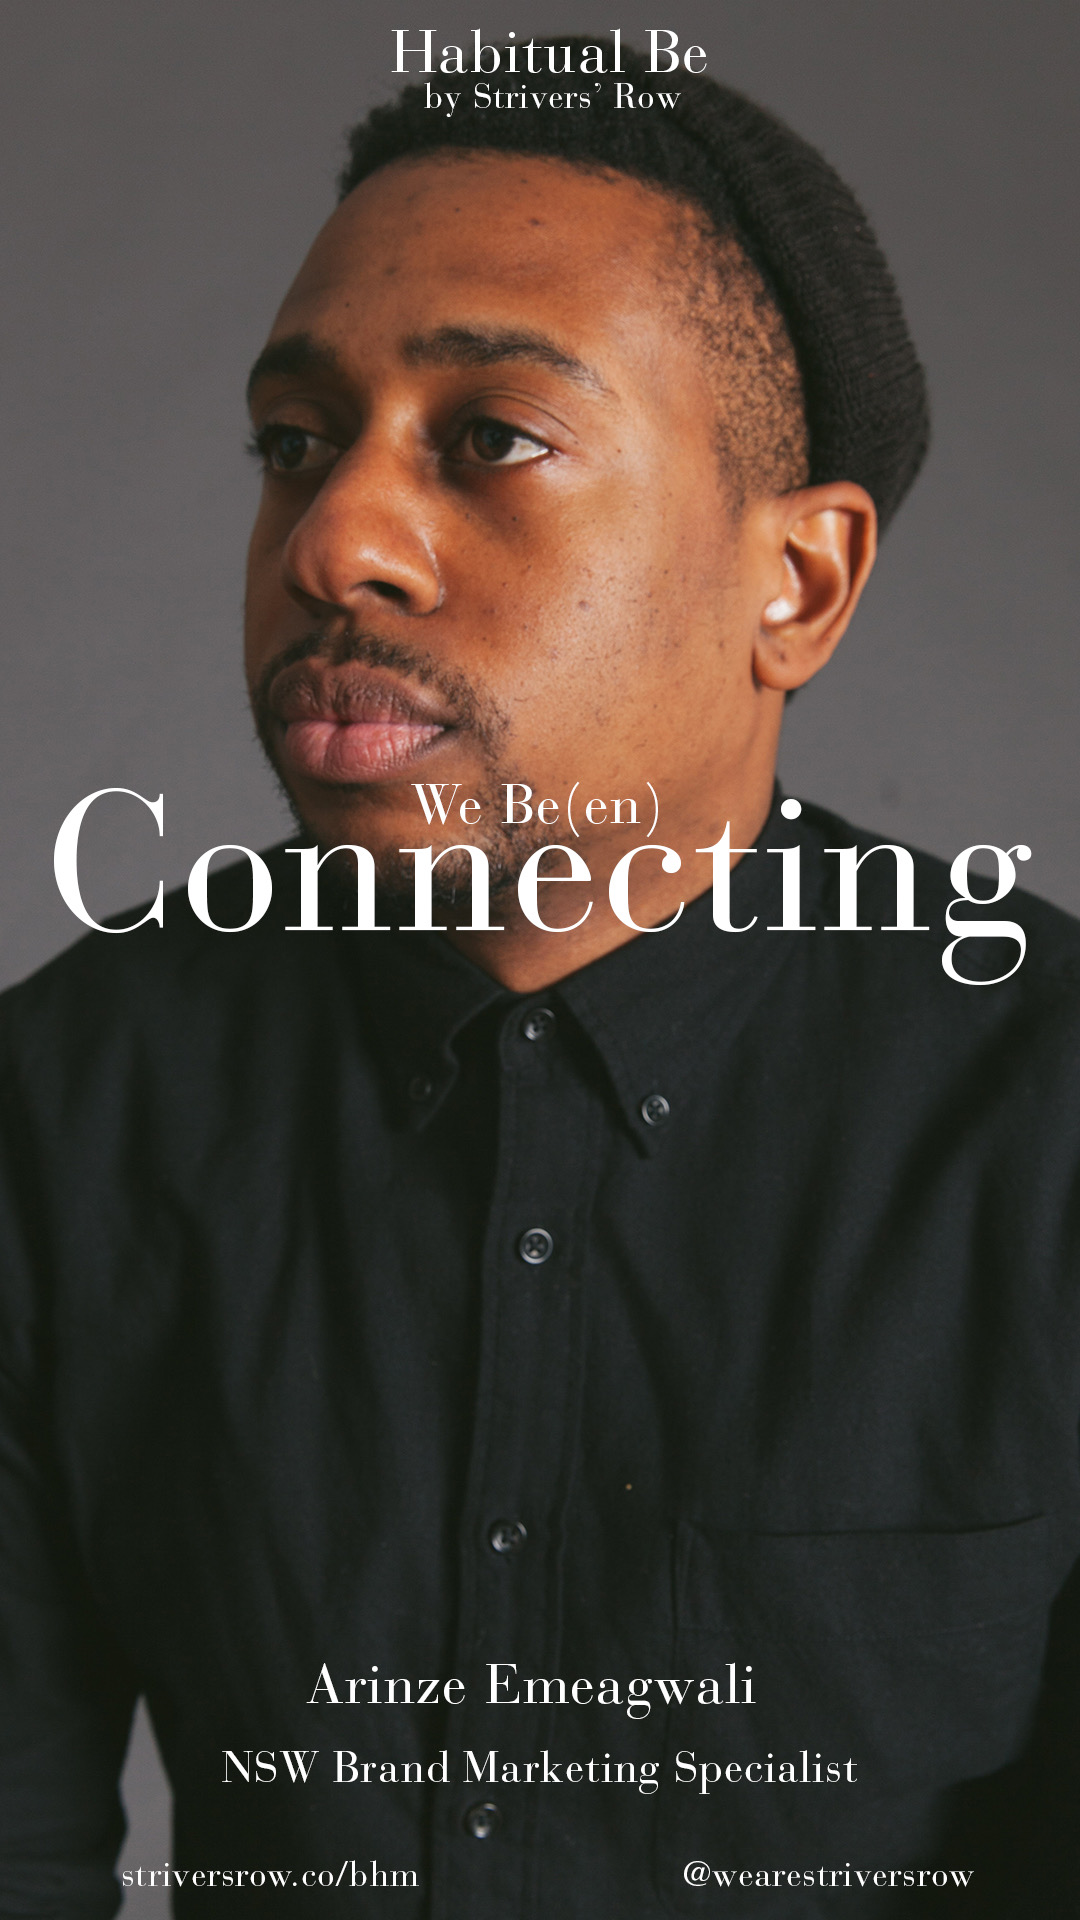 """""""There's no Lebron James without Maverick Carter. He has to support Lebron and level him up to get him where he needs to be. You're only as good as your circle and that team went to get it for themselves. They leveraged their opportunities versus remaining comfortable and growing stagnant. It's really about what he does for the community, reaching back to bring up the next person, to people of color. My grind is all about putting people on and giving opportunities for their sake and not myself."""""""